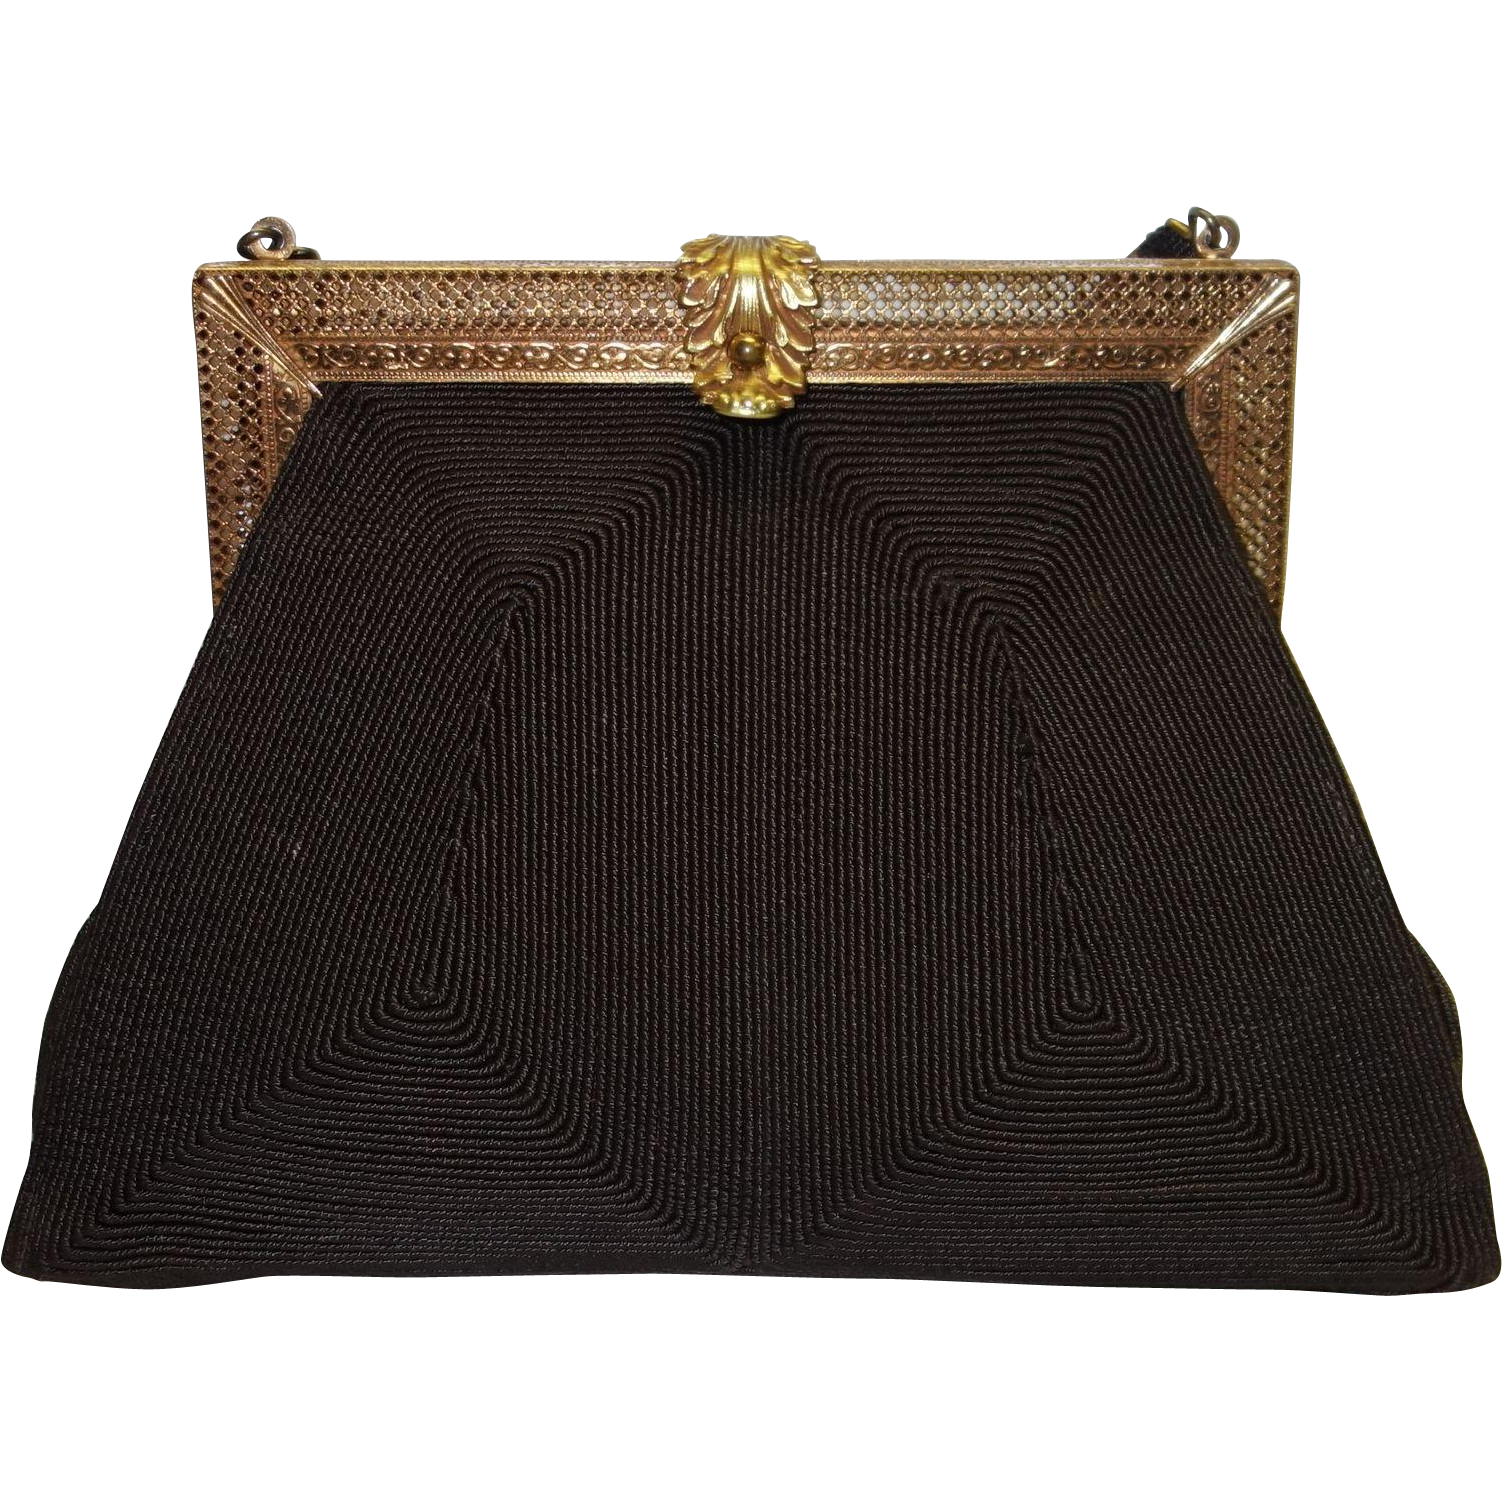 Vintage 1940's Brown Genuine Corde` Purse with Intricately Detailed Frame